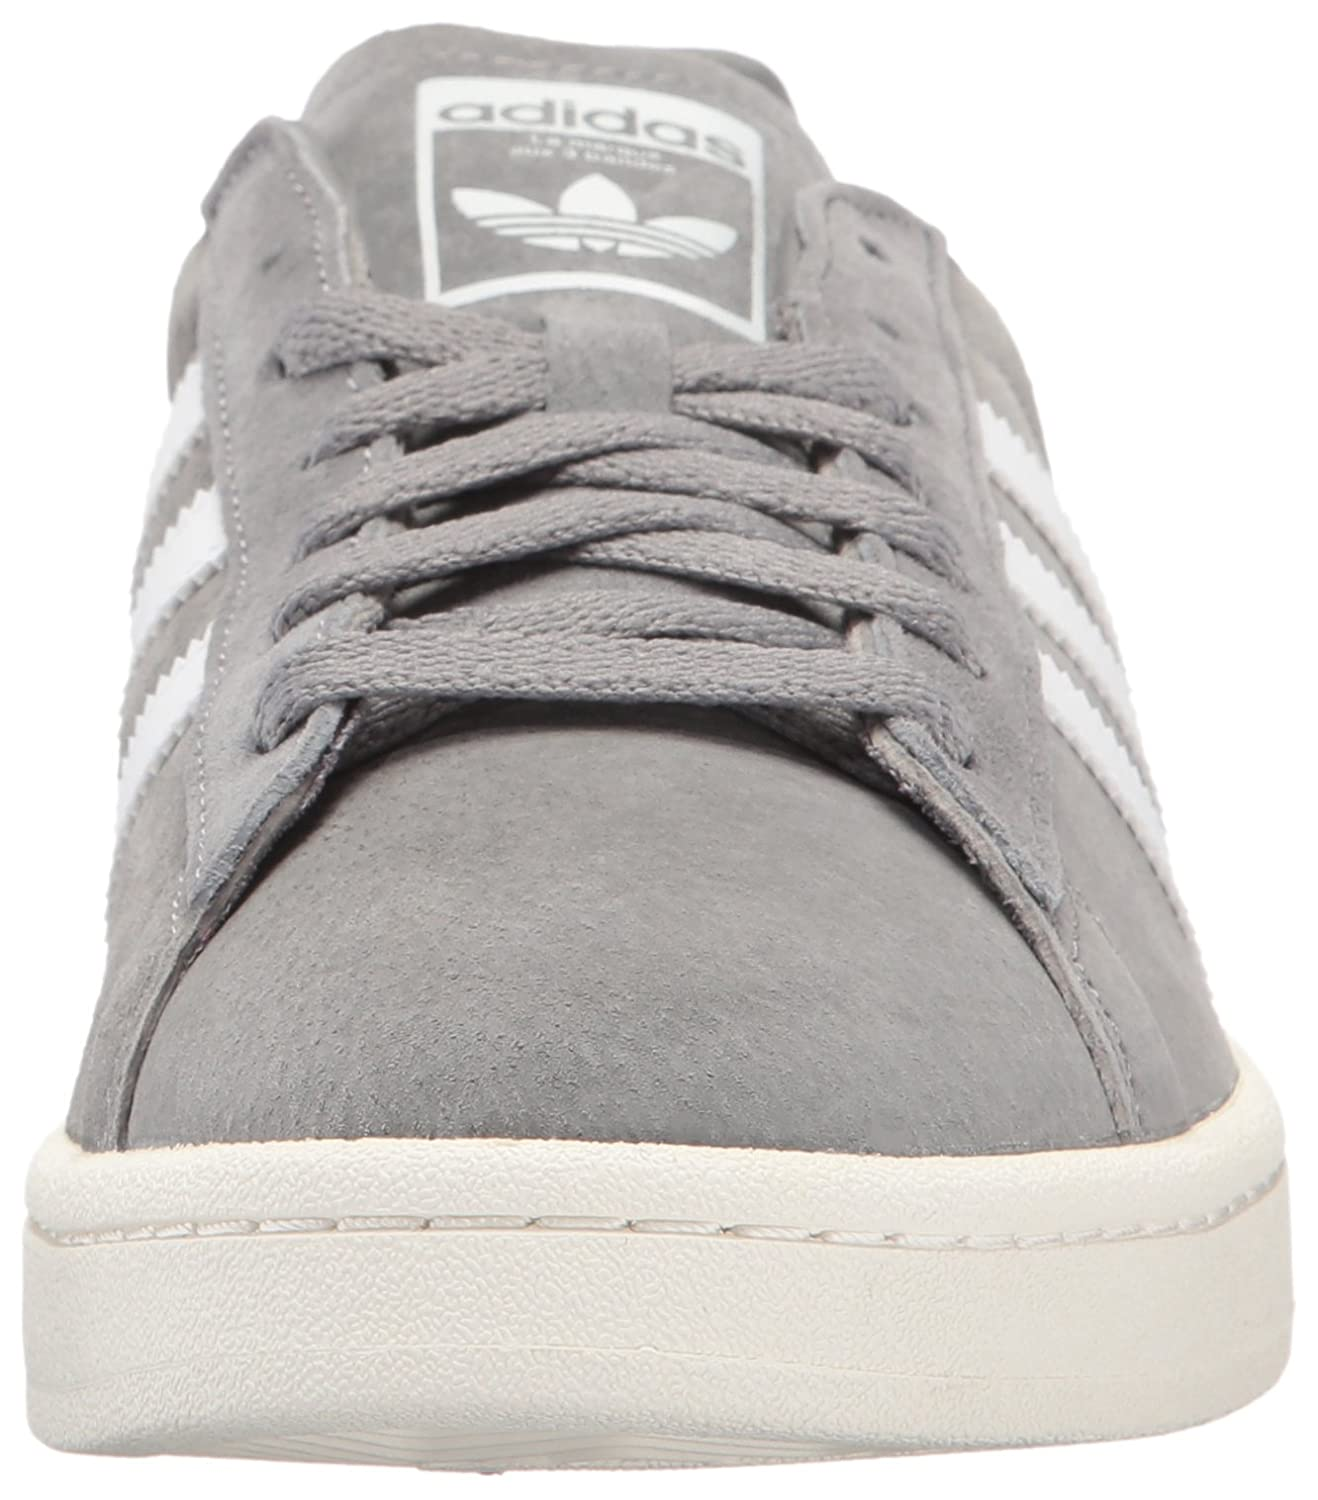 Adidas-Campus-Men-039-s-Casual-Fashion-Sneakers-Retro-Athletic-Shoes thumbnail 35